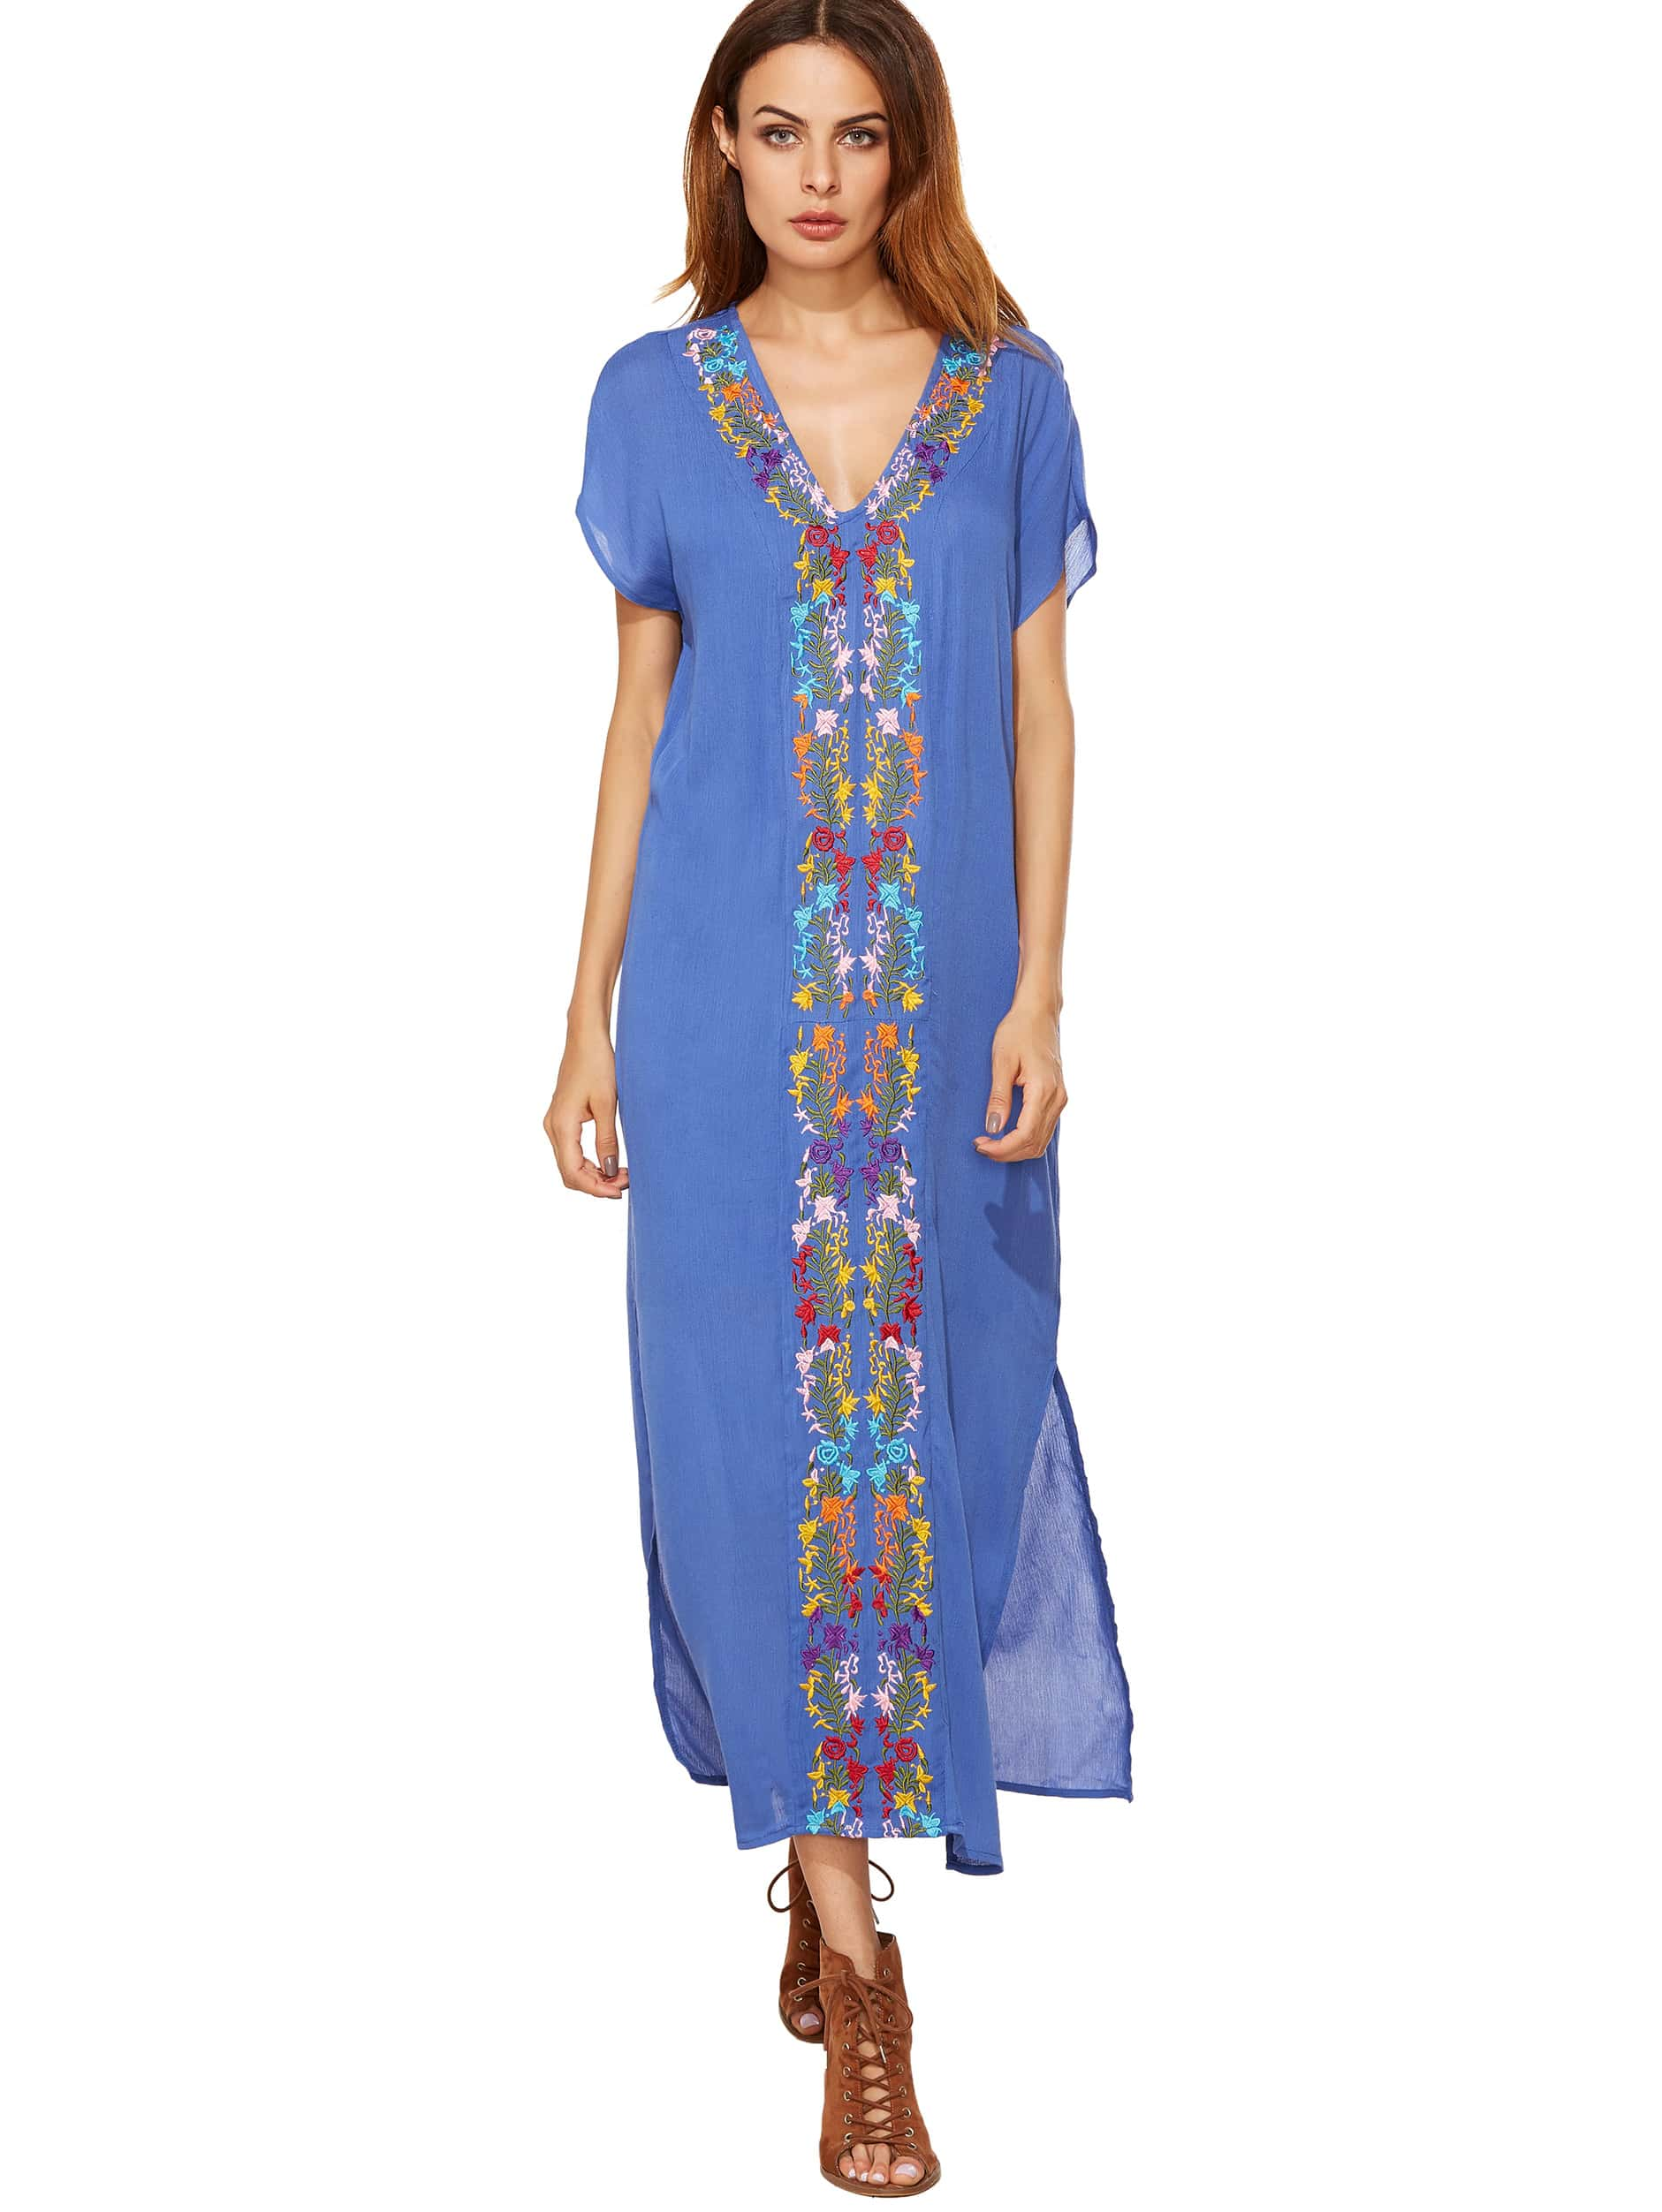 Blue Placement Print Split Side Maxi Dress dress160905597